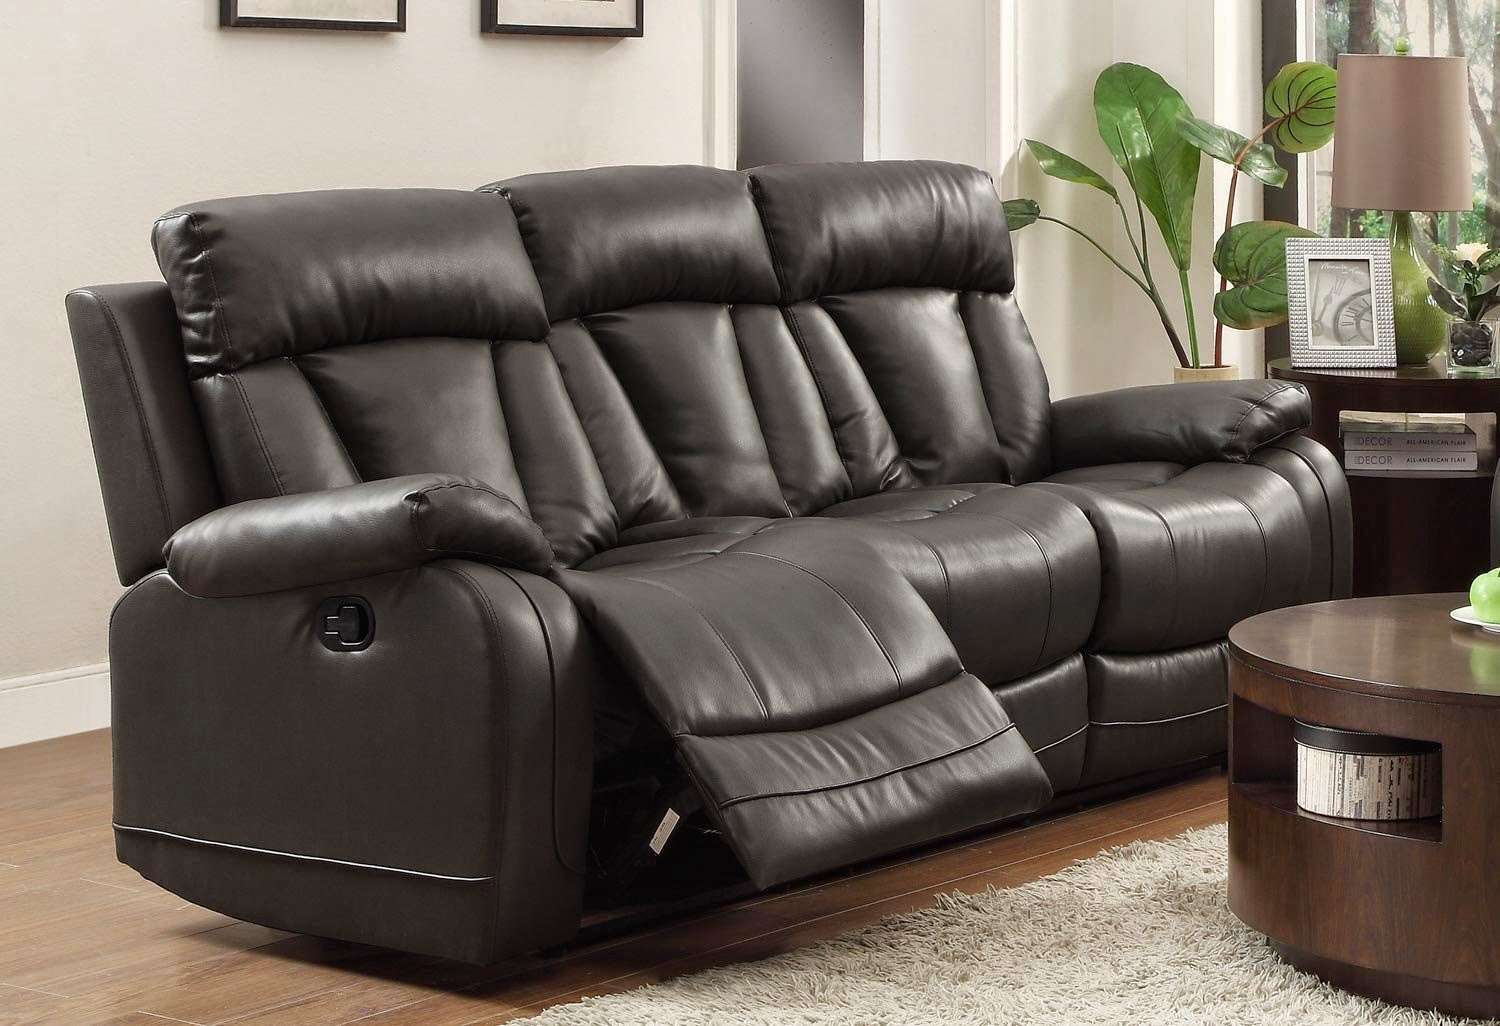 Homelegance Black Alpha Leather Dual Reclining Sofa